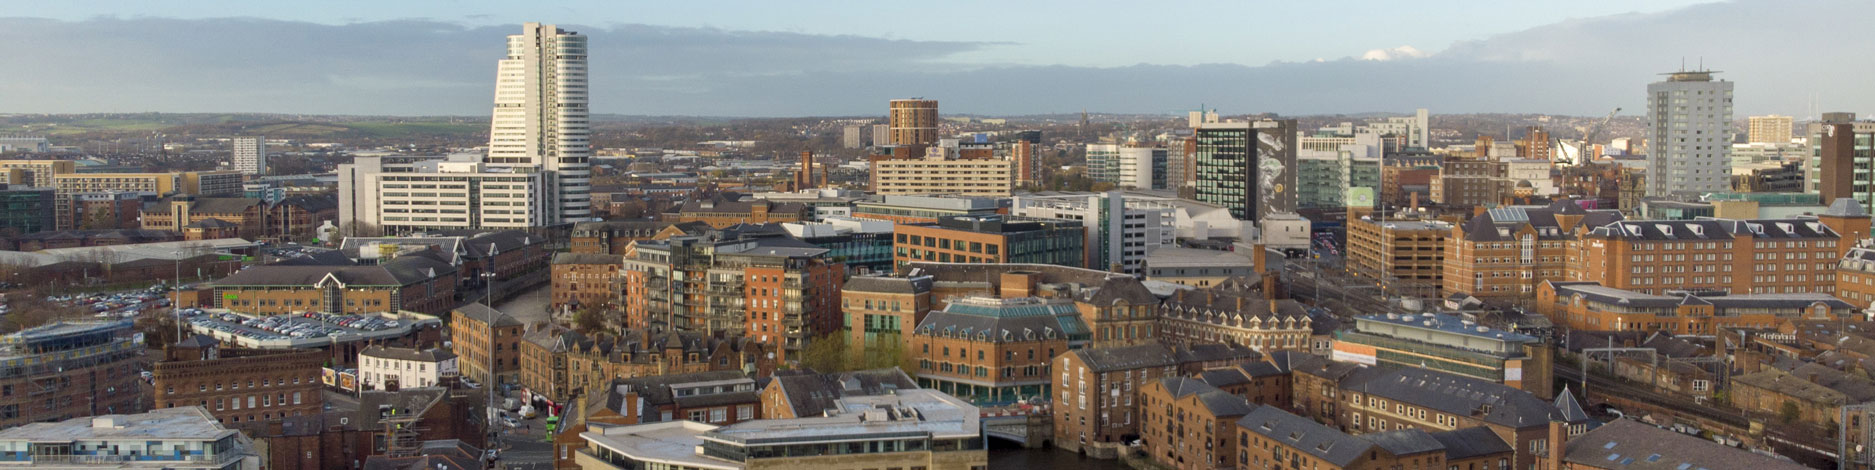 5 reasons to visit Leeds at least once